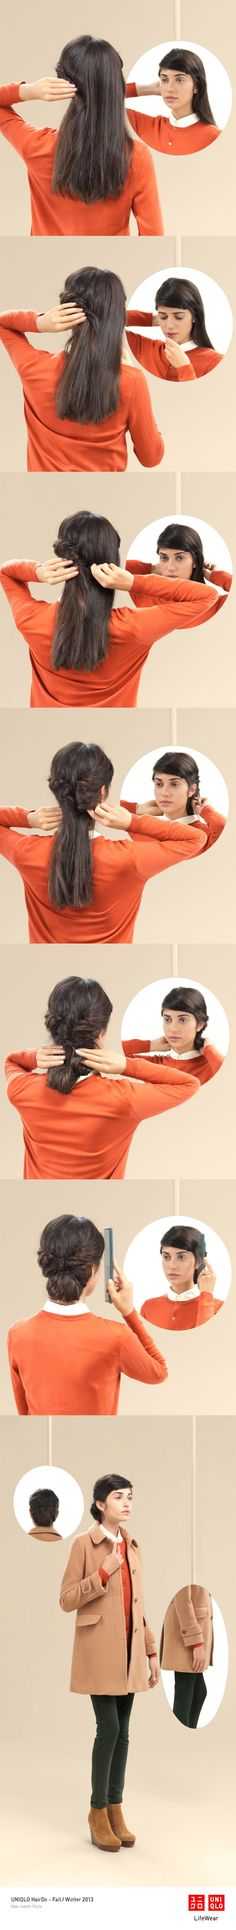 The Rounding - S #UpDo #Hair #Hairstyle #DIY #Uniqlo